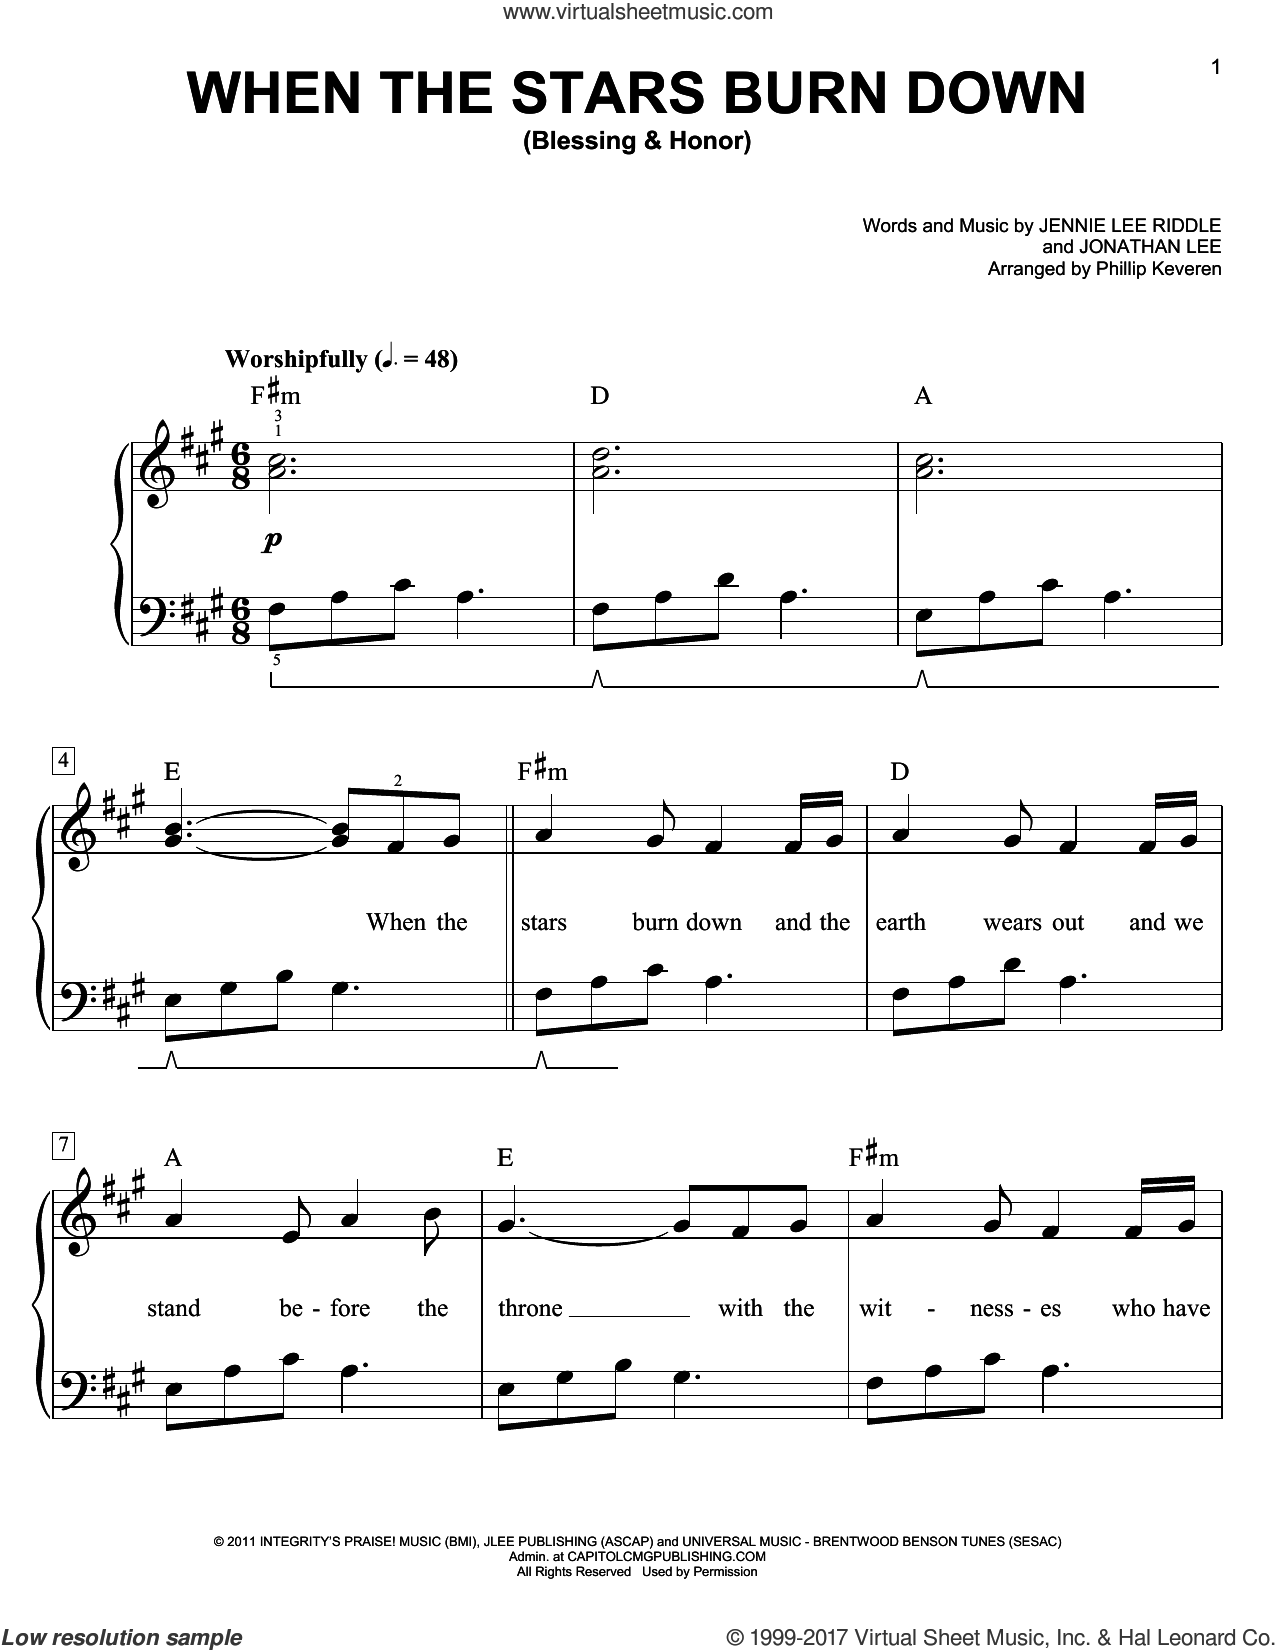 When The Stars Burn Down (Blessing and Honor) sheet music for piano solo by Jennie Lee Riddle, Phillip Keveren and Jonathan Lee, easy skill level